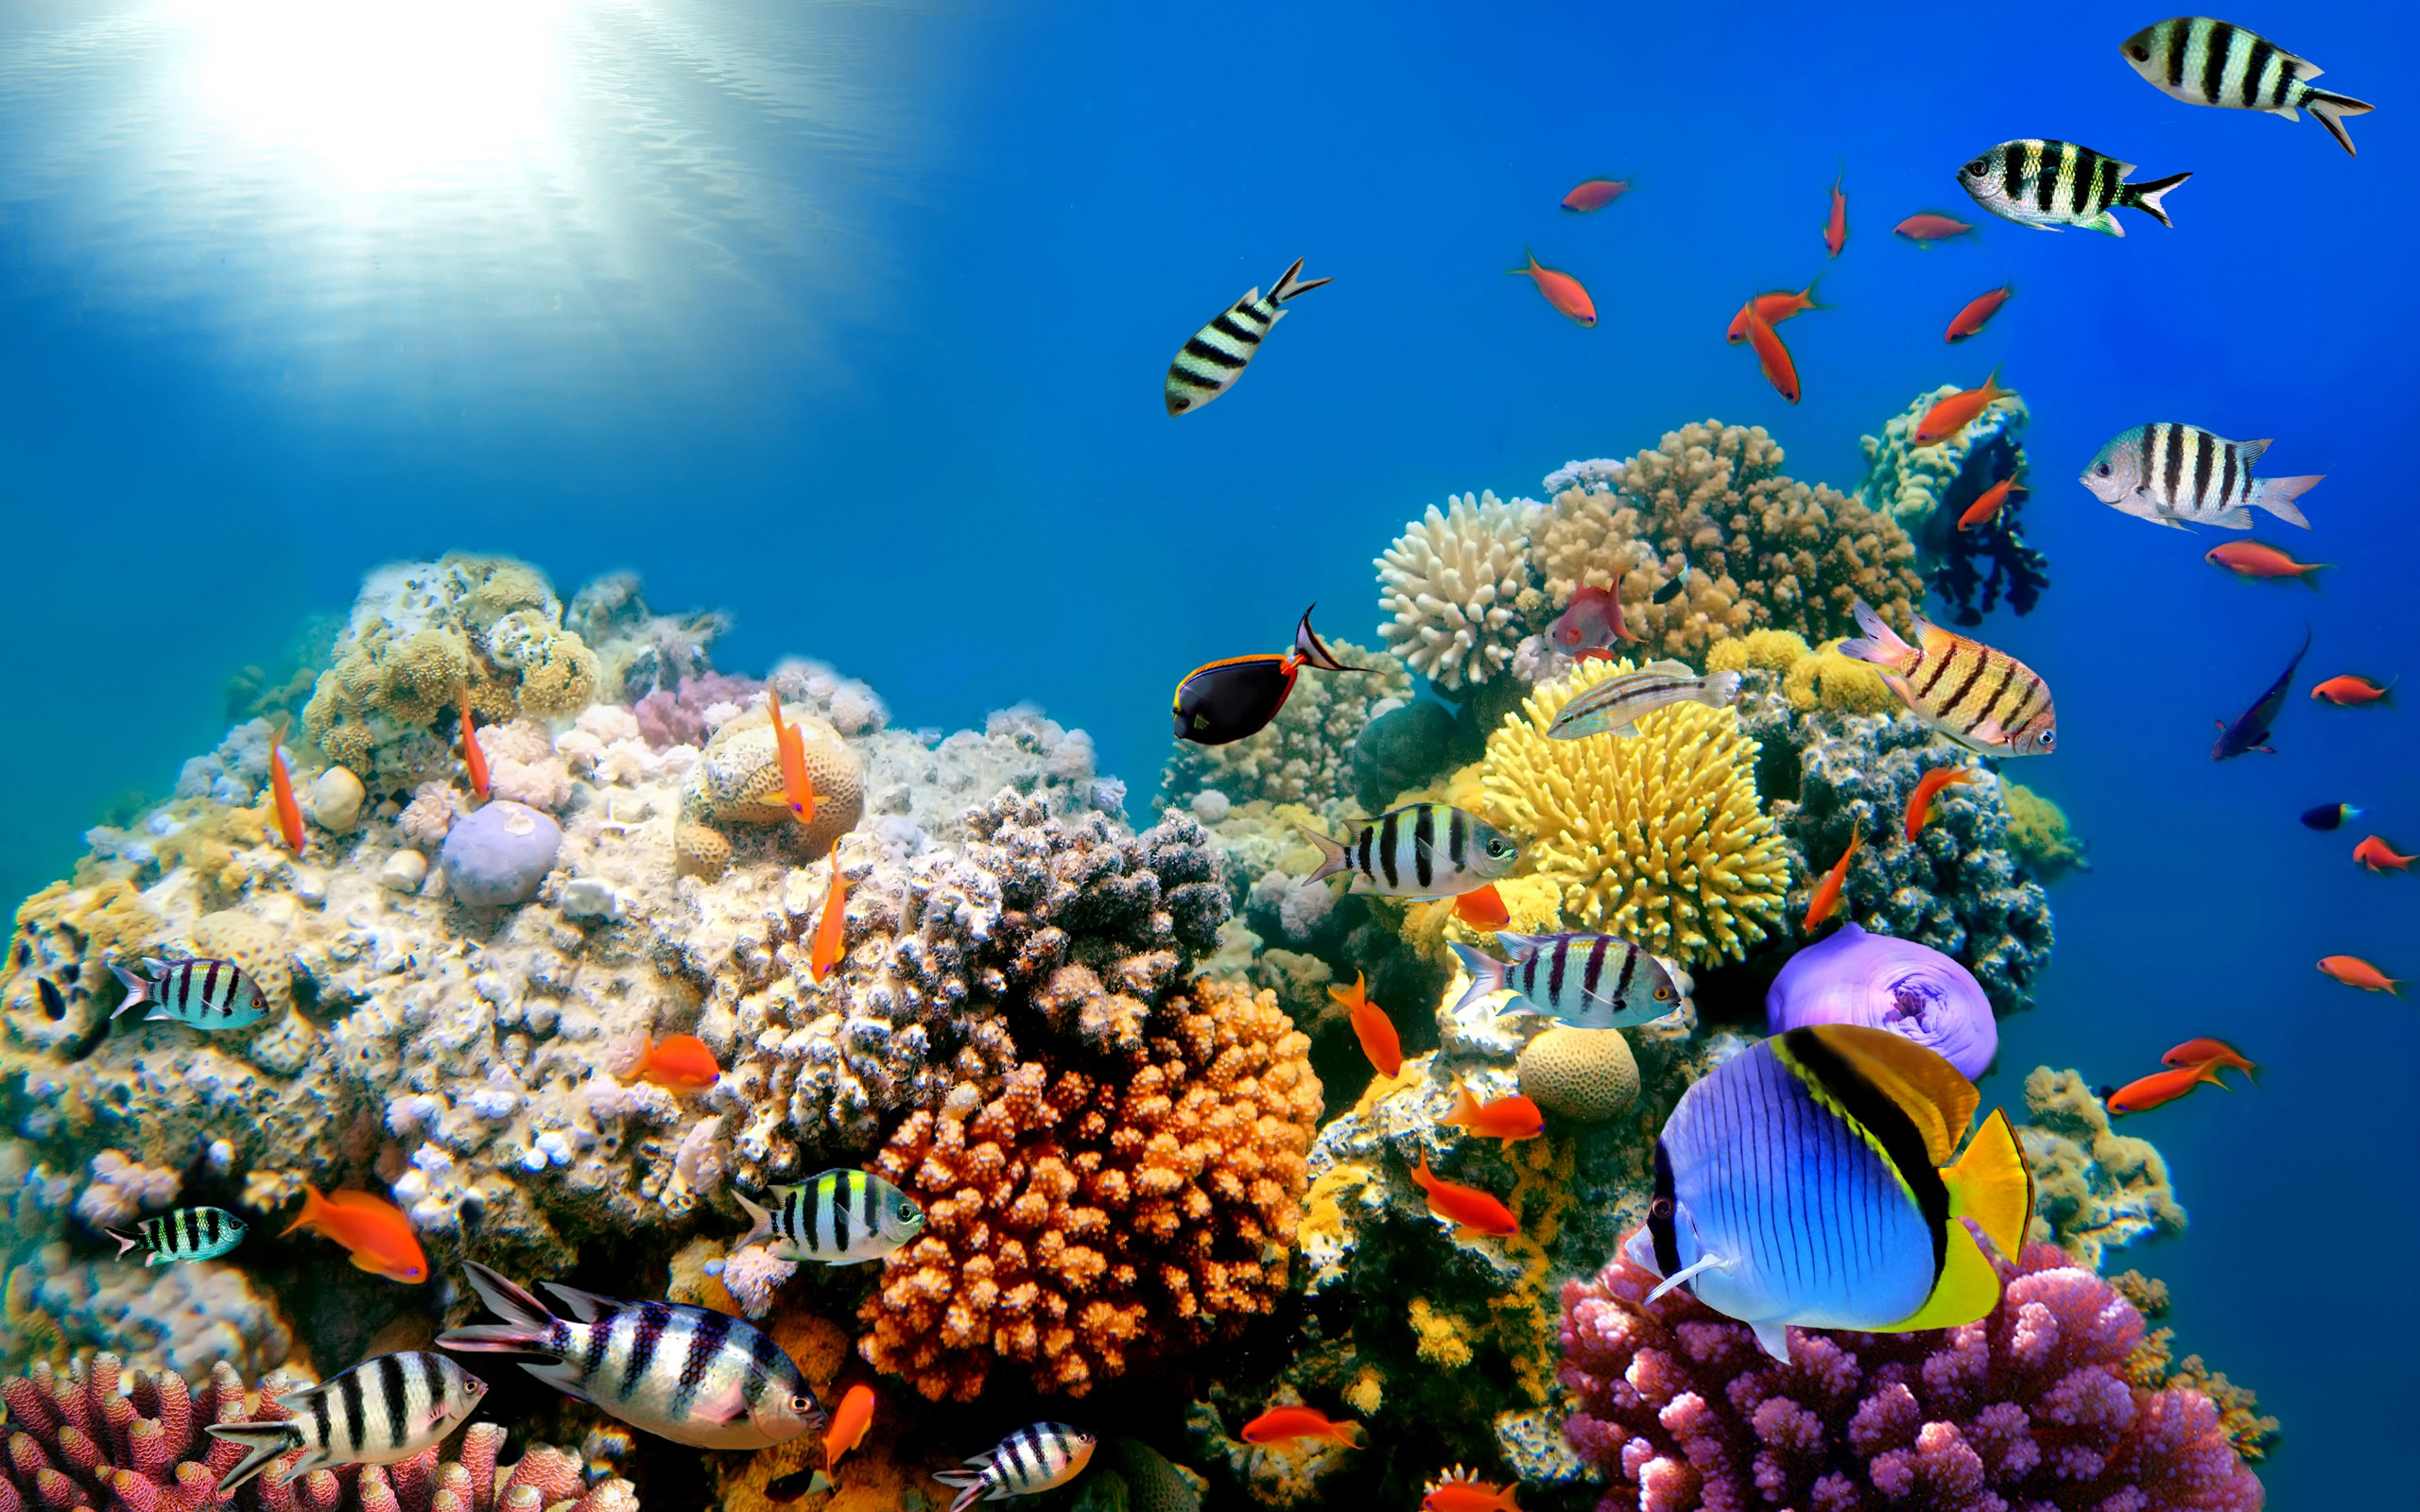 Coral reefs: Exploring the rainforest of the seas